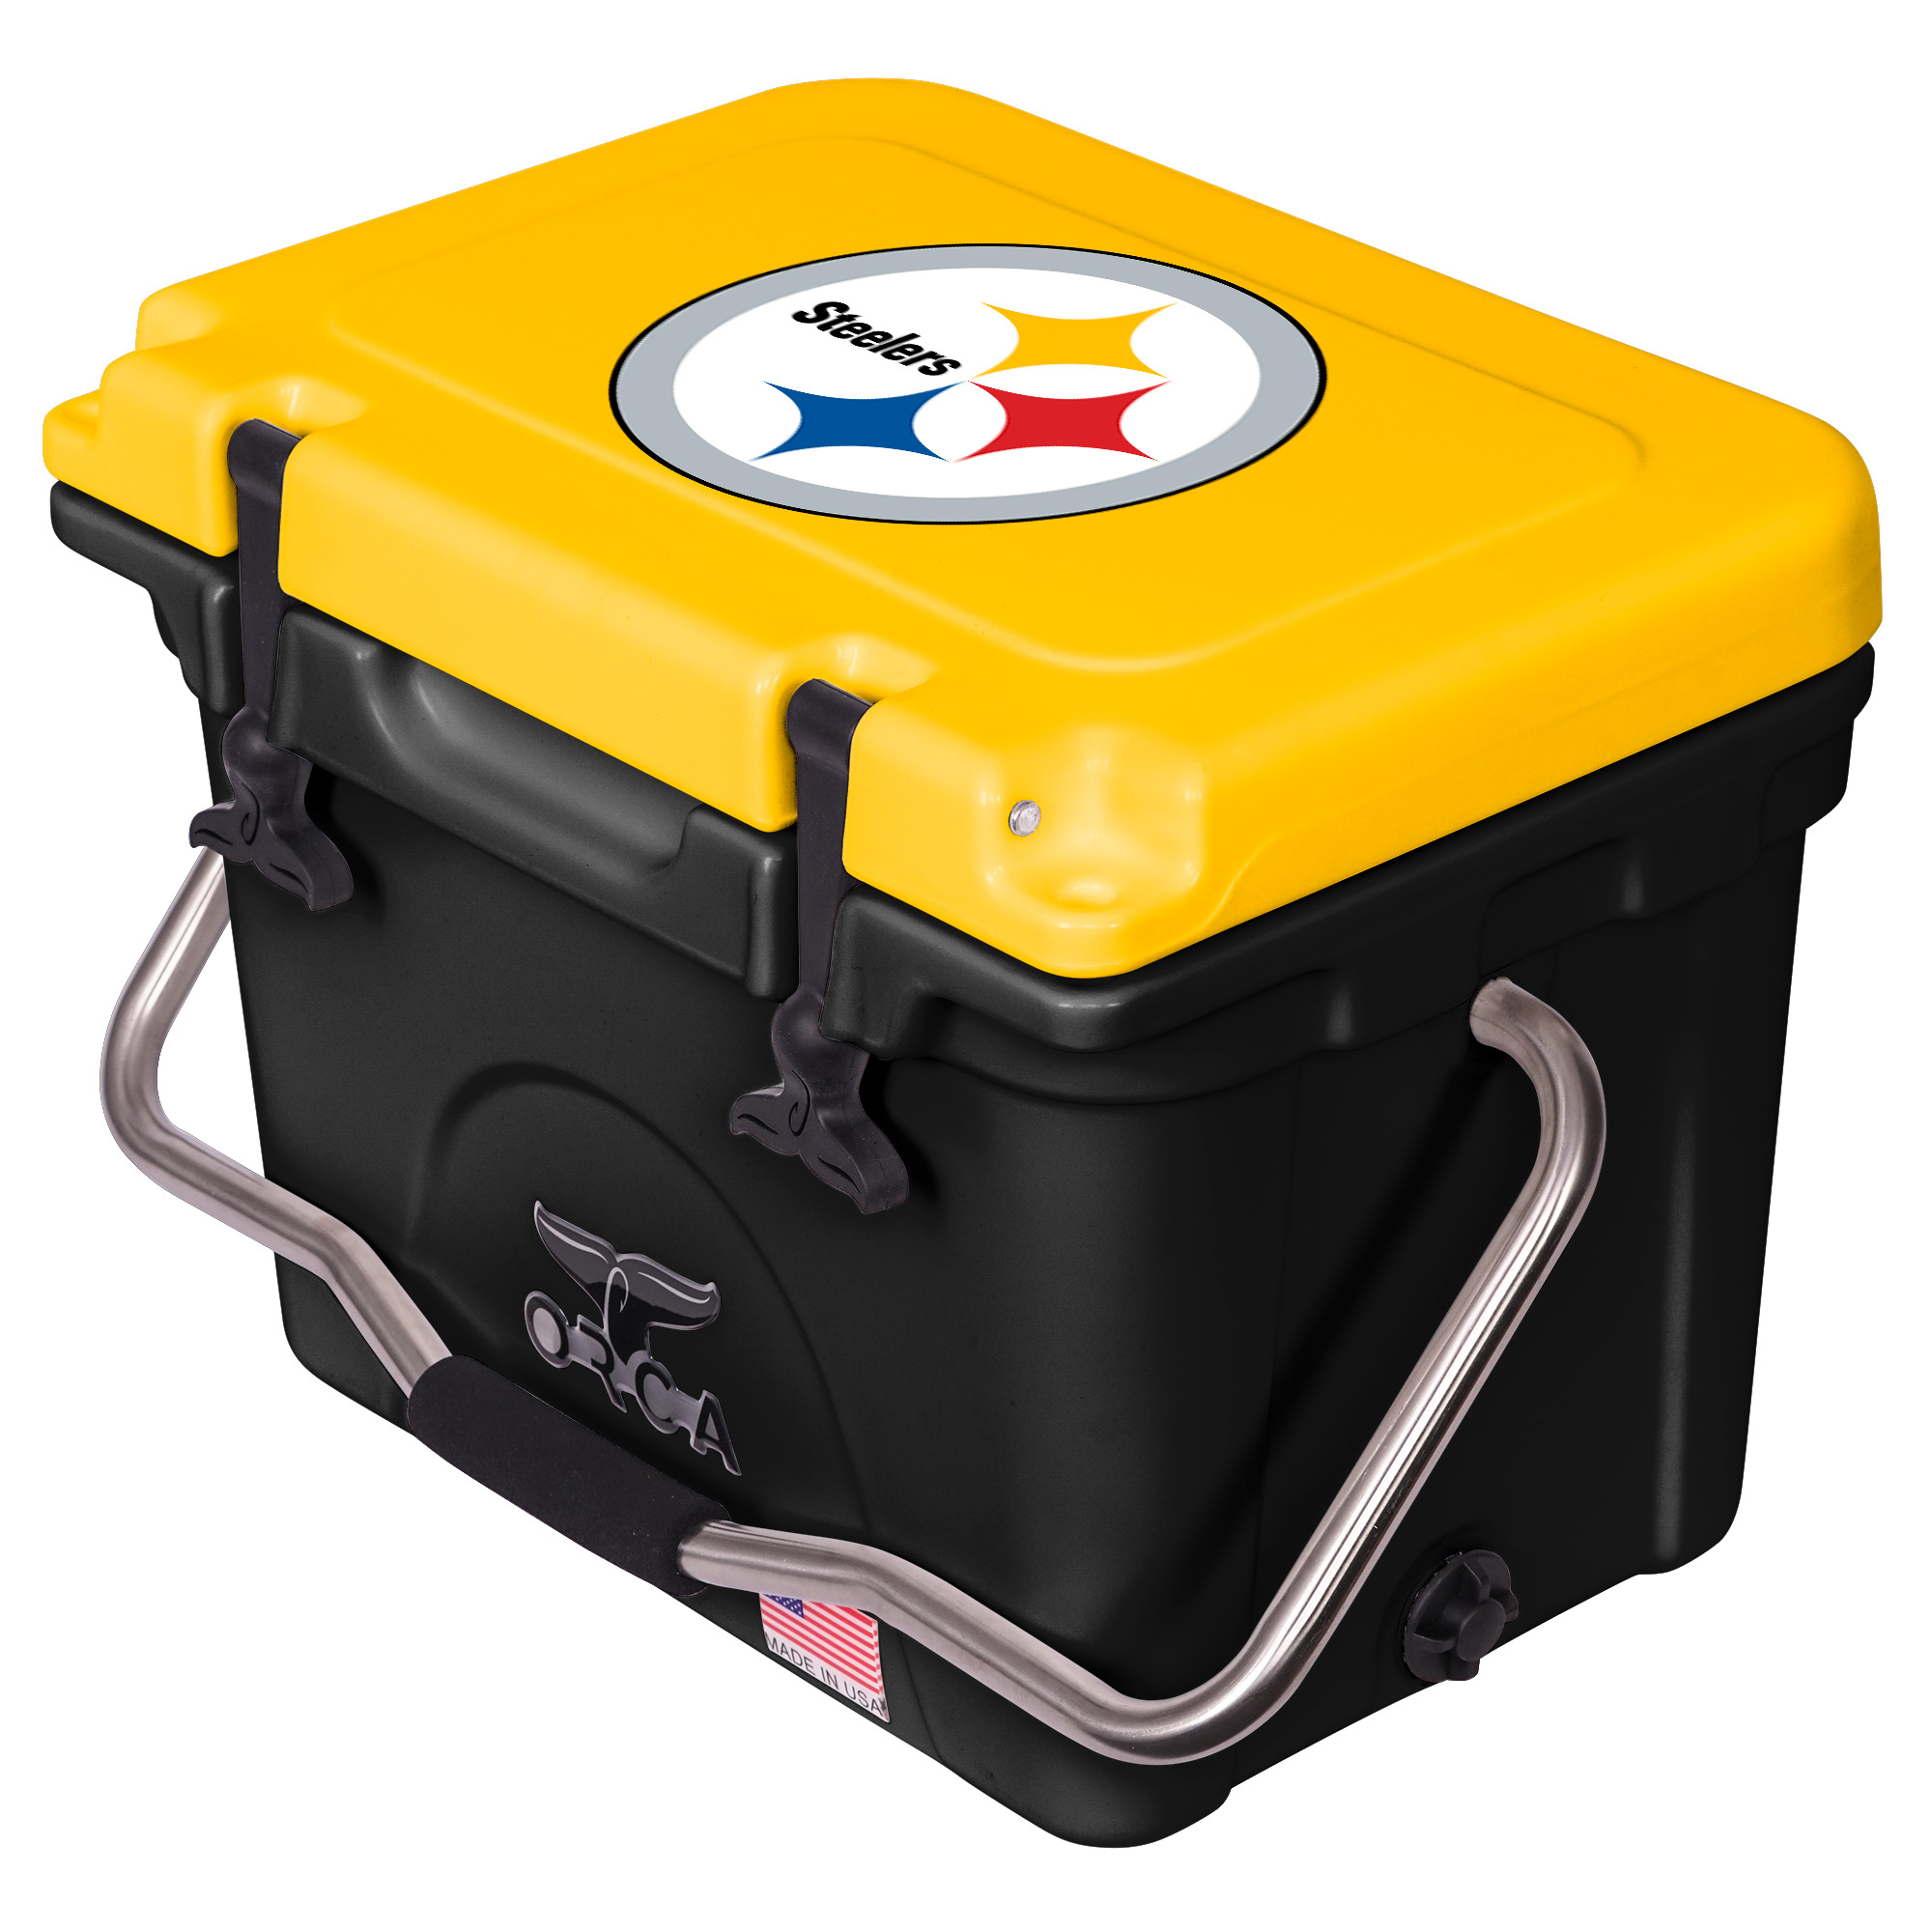 Pittsburgh Steelers ORCA 20-Quart Hard-Sided Cooler - Black/Gold - No Size